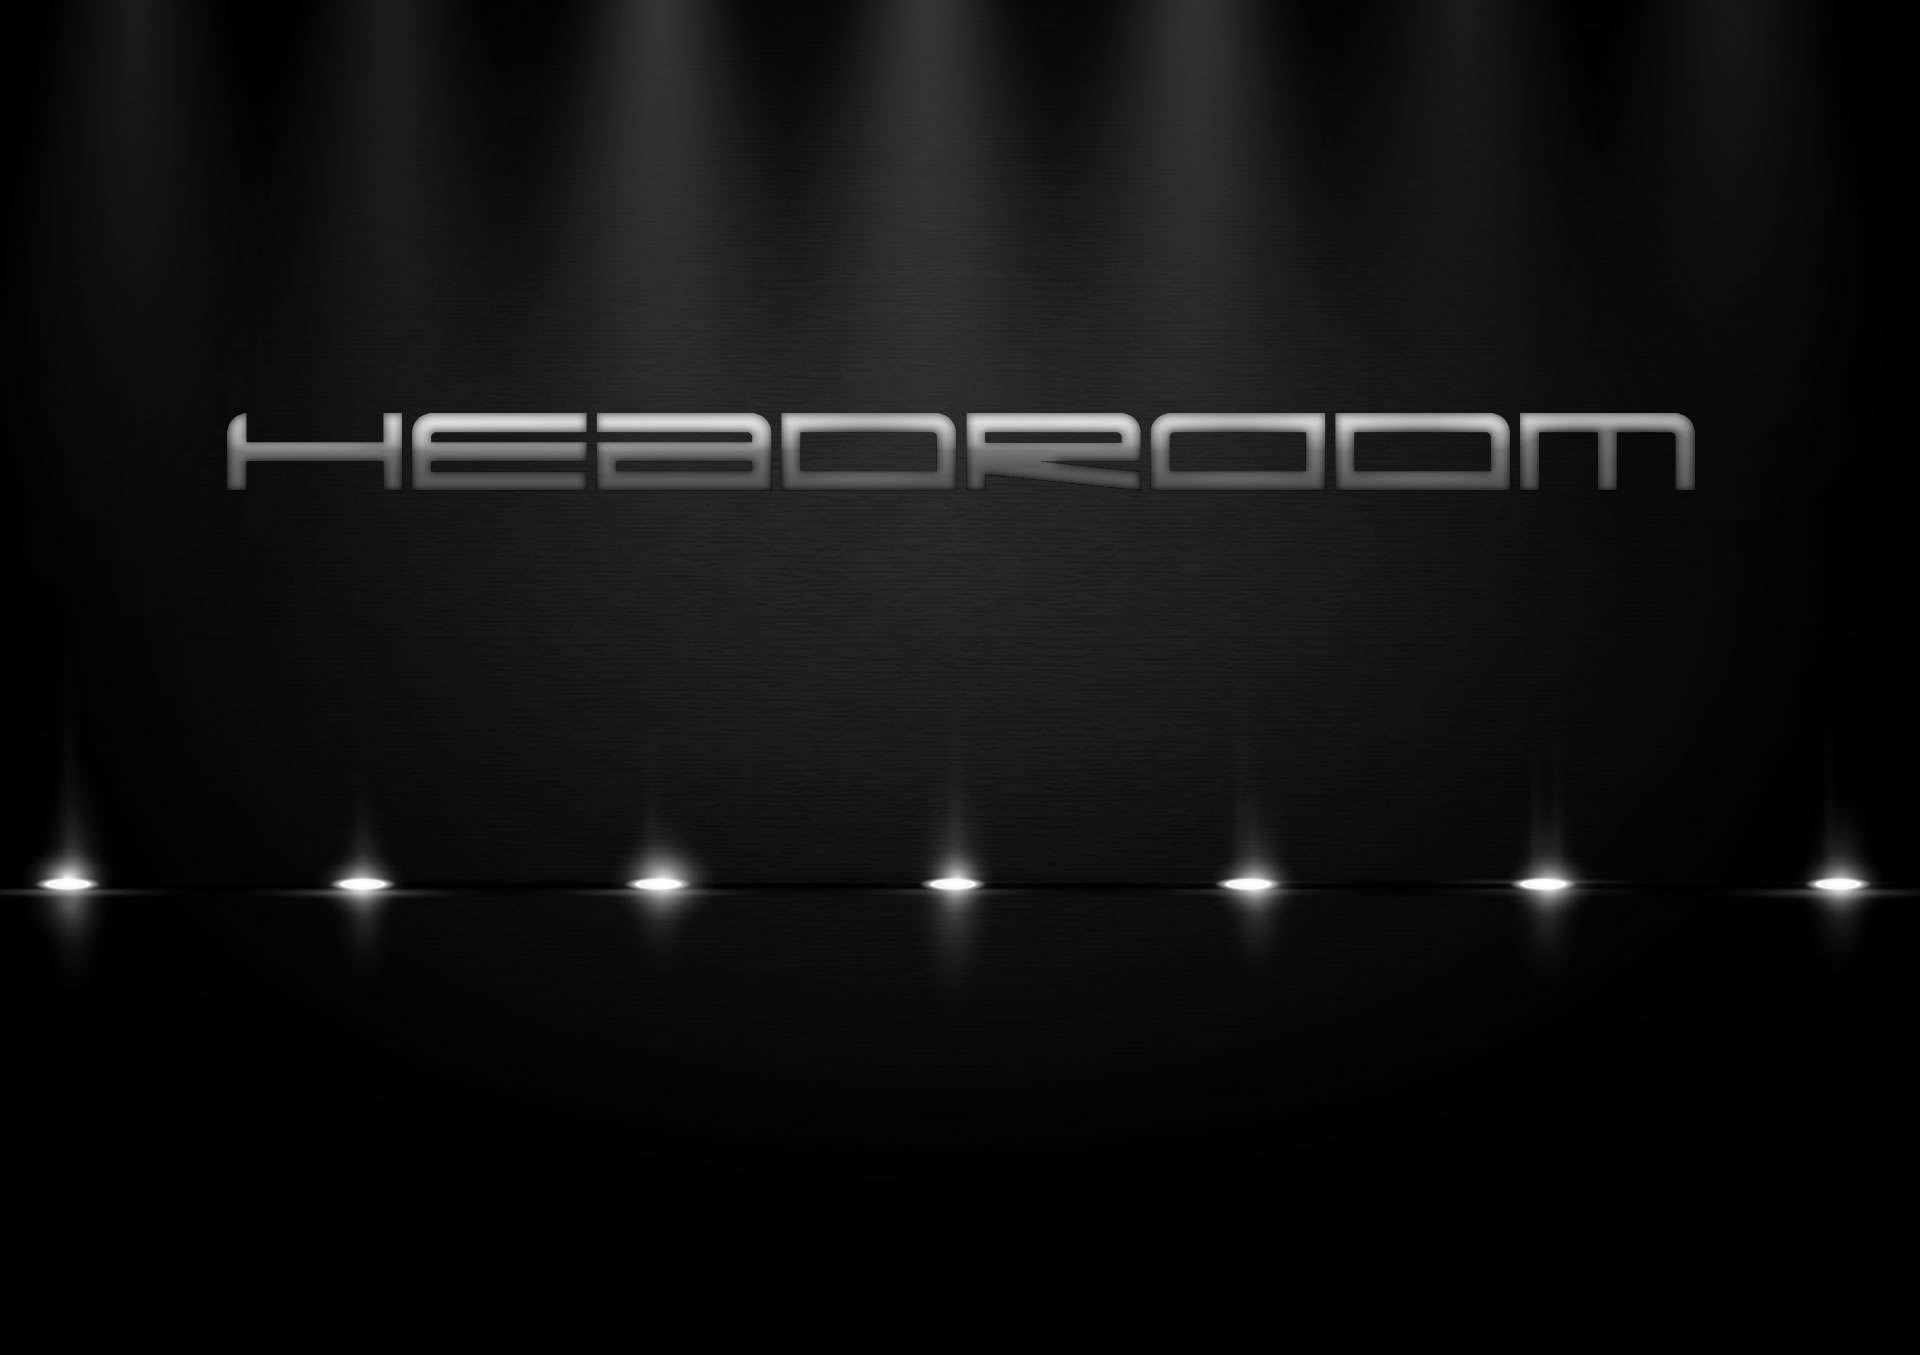 headroom logotype on black background